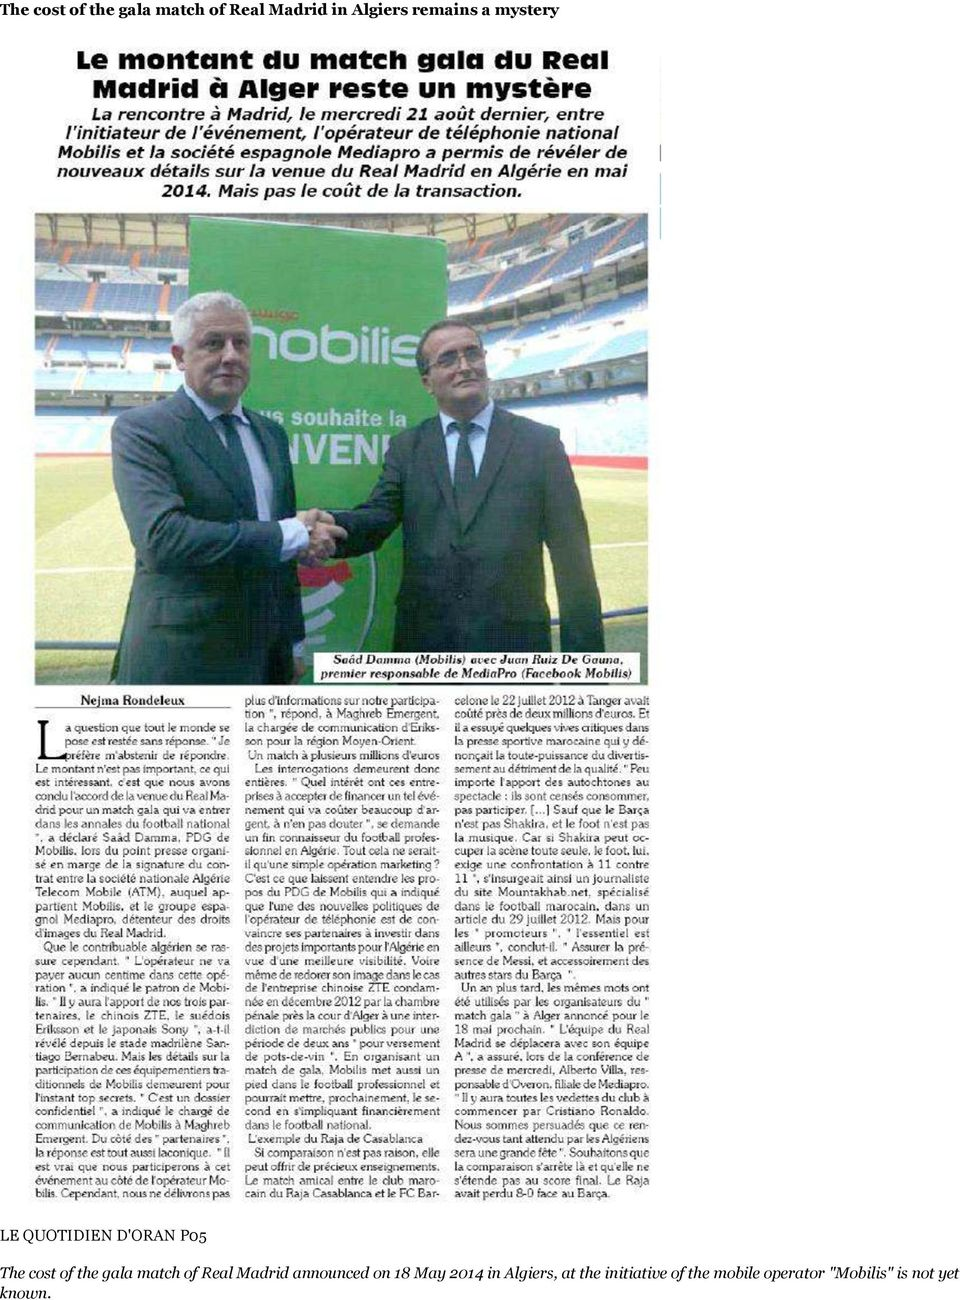 of Real Madrid announced on 18 May 2014 in Algiers, at the